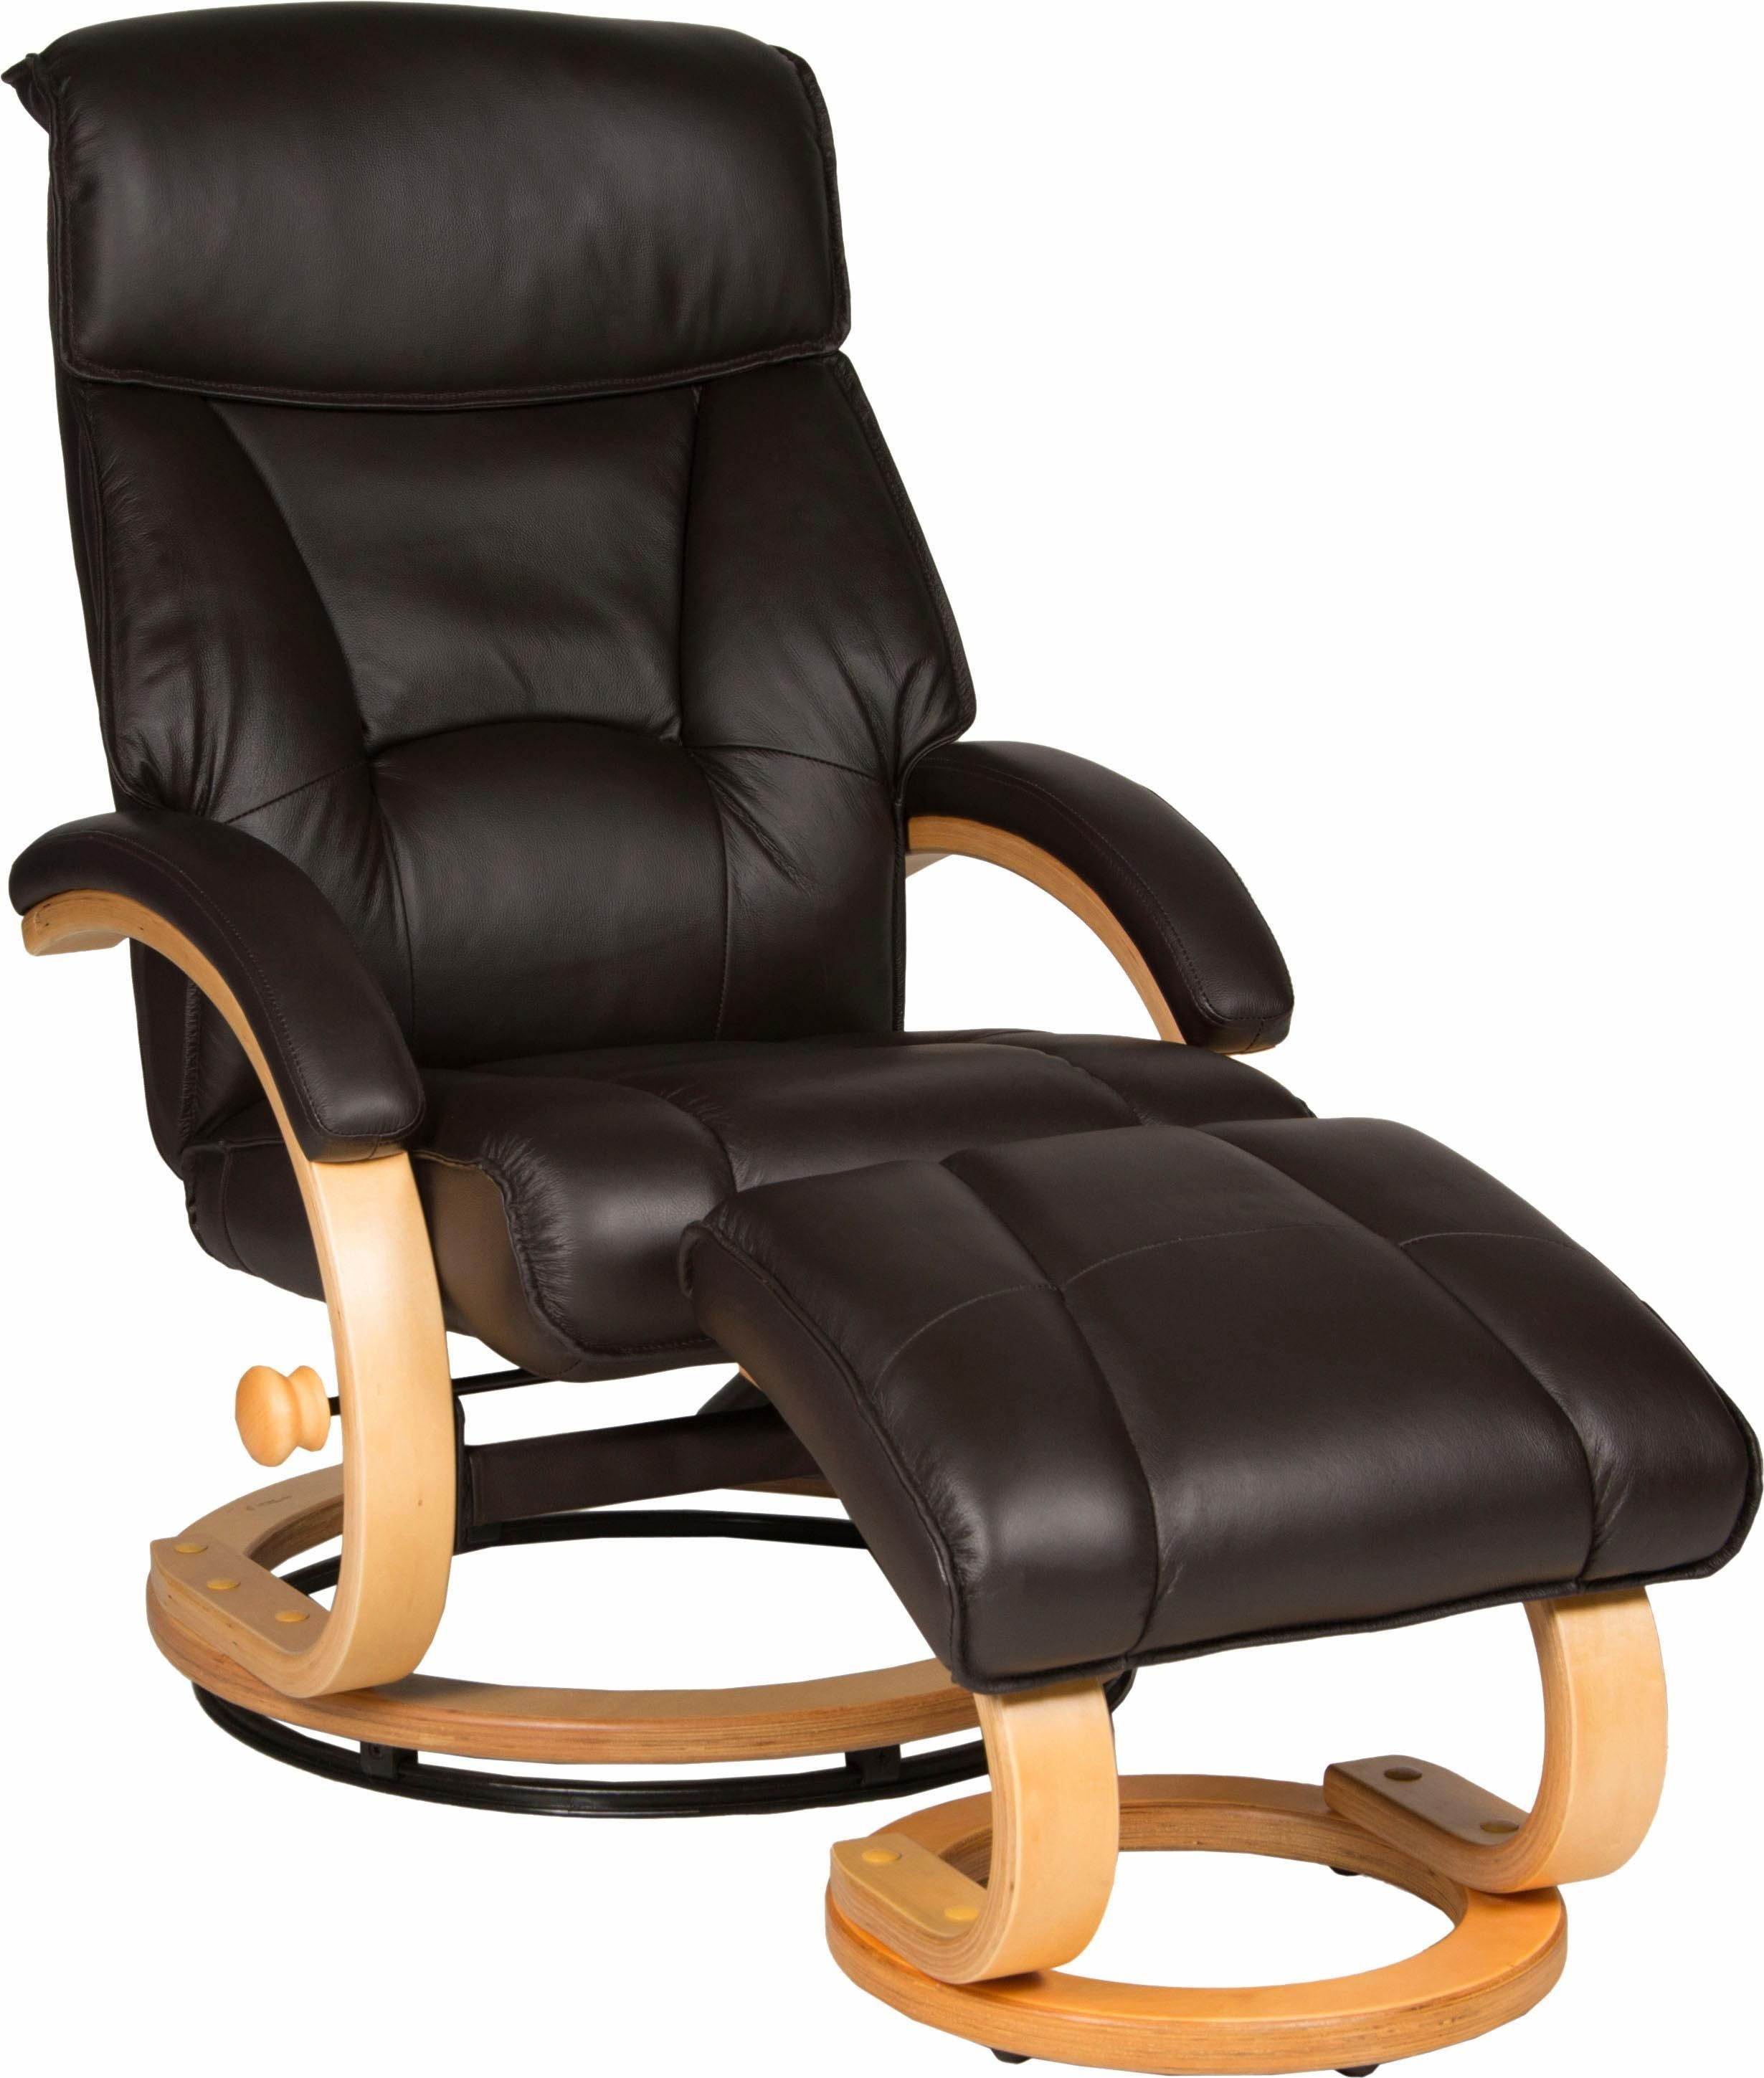 Duo Collection Relaxsessel Los Angeles Relaxsessel Sessel Sessel Gunstig